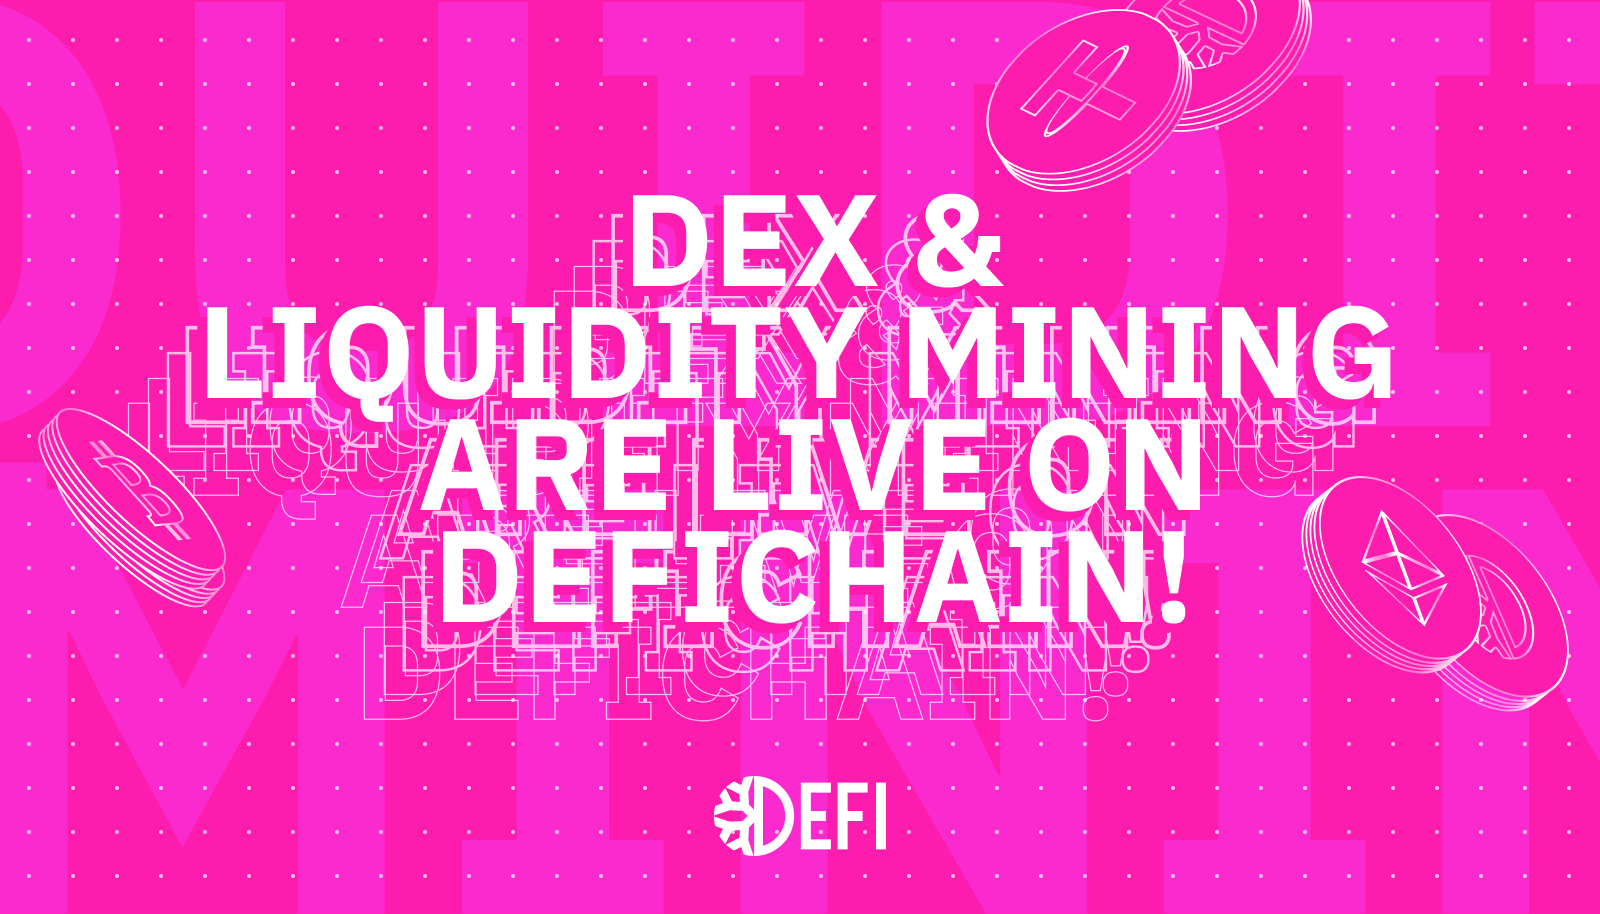 DeFiChain DEX is Live! $1.25M USD Value Locked within 24 hours!